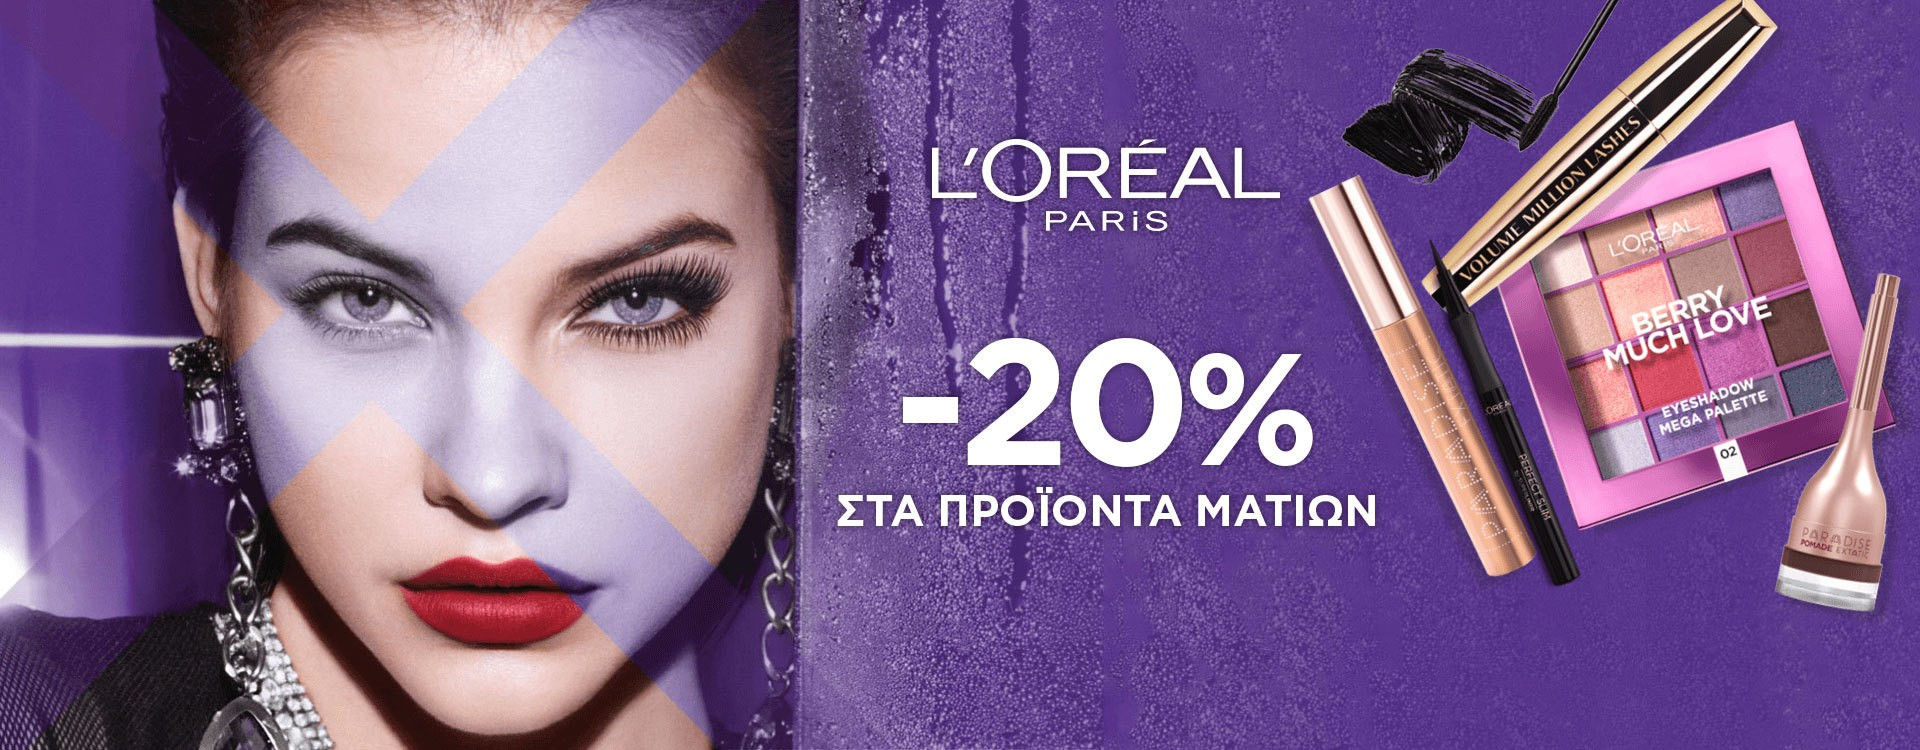 Slider l oreal paris 20  eyes feb19 1920x750